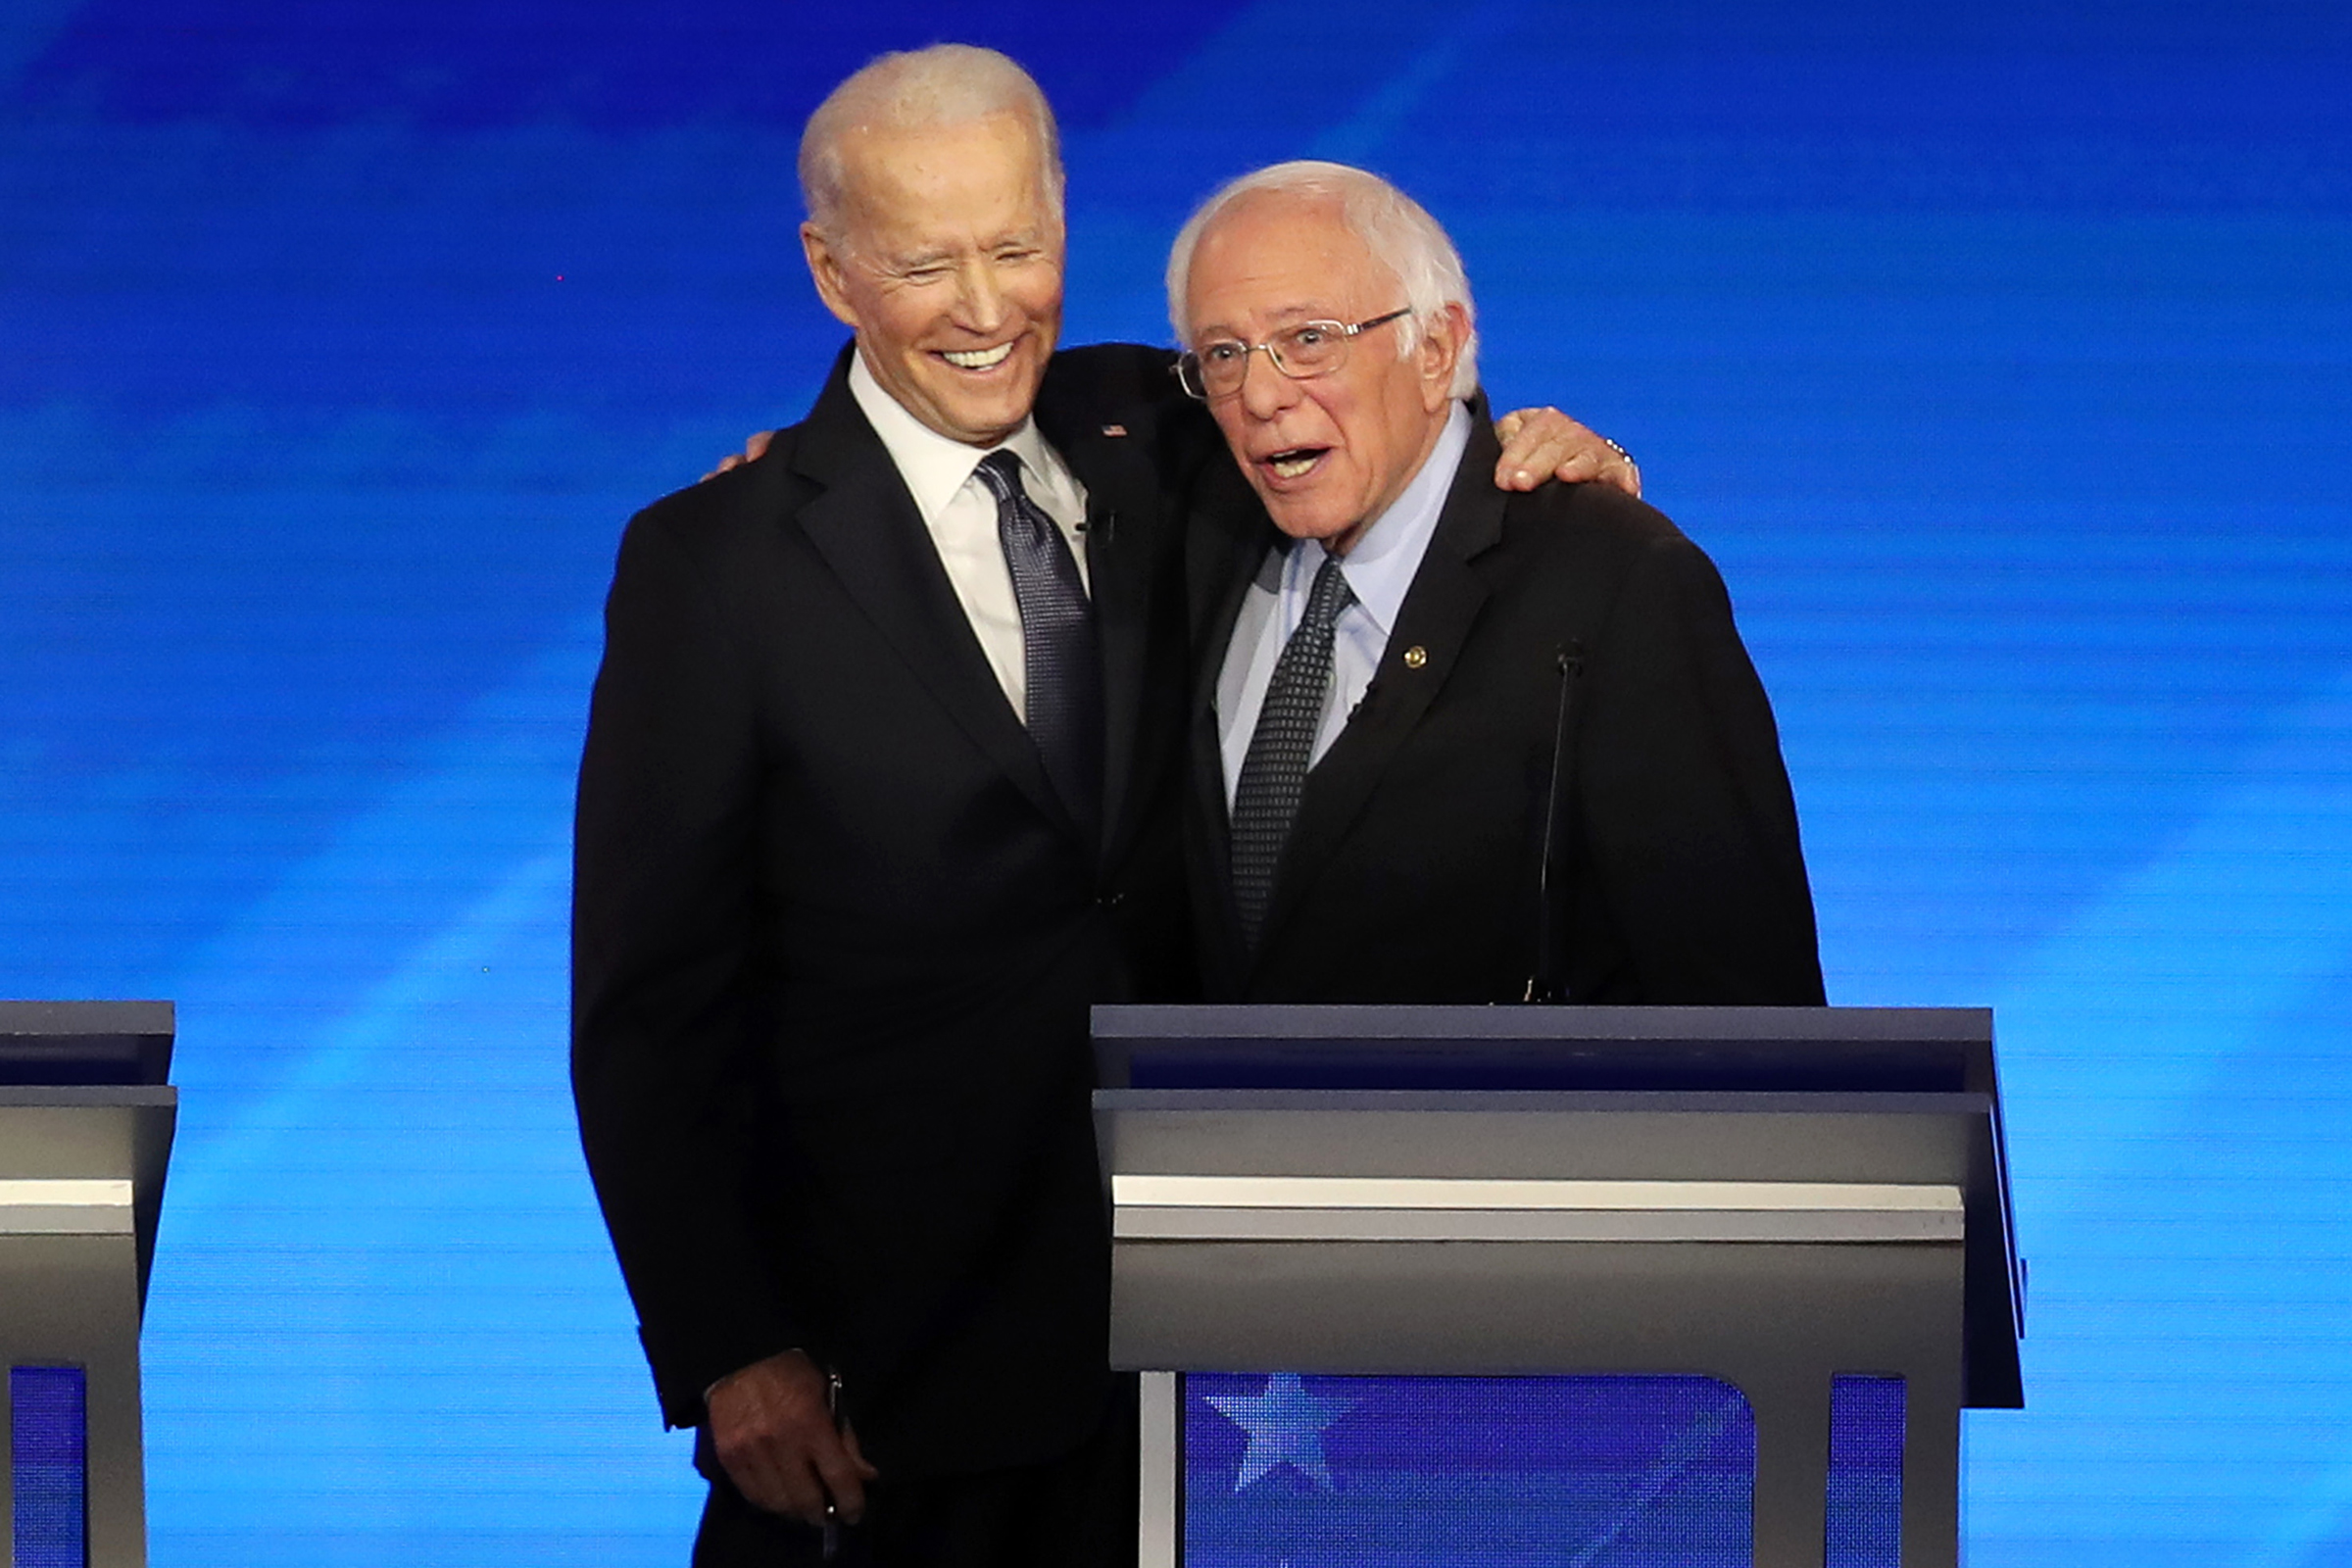 Then-presidential candidates Joe Biden and Sen. Bernie Sanders share a moment during the Democratic presidential primary debate in Manchester, N.H. on Feb. 7, 2020.